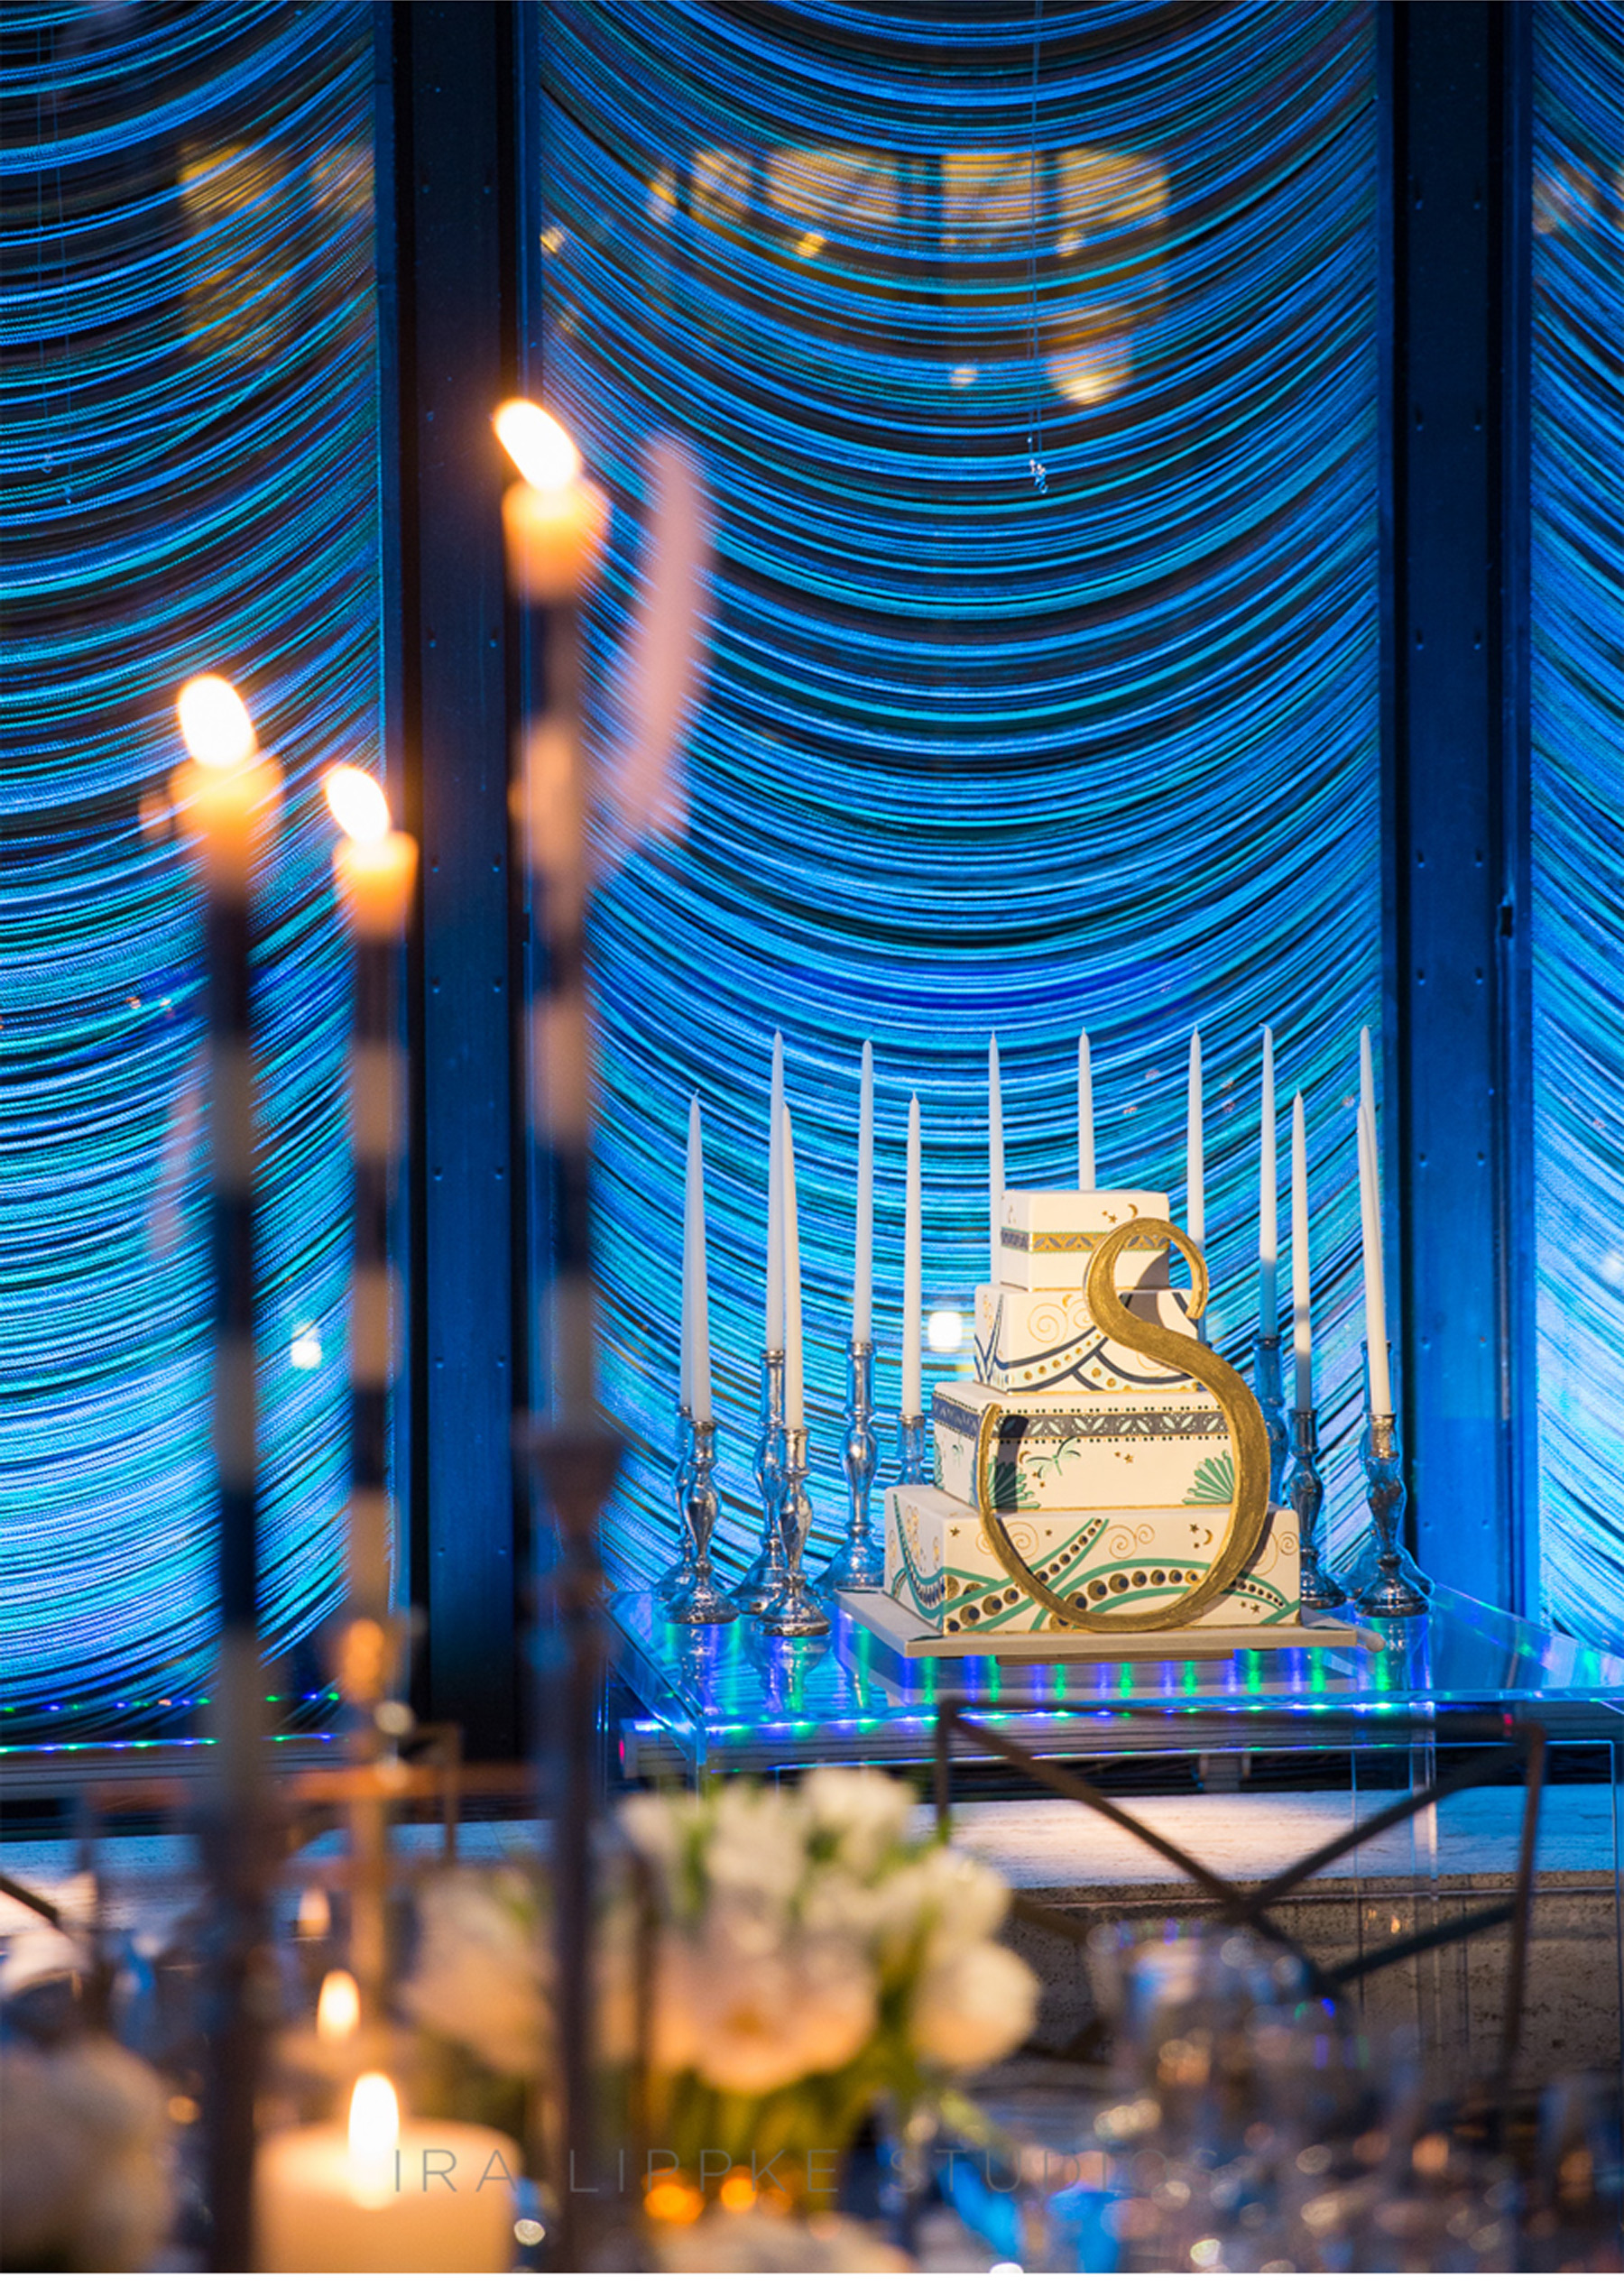 Our Muse - Blue Deco Bat Mitzvah - Be inspired by Samantha's blue, Deco-themed bat mitzvah at the Four Seasons Restaurant - deco, blue, gold, bat mitzvah, custom, design, new york city, ceci new york, monogram, cake, design, place card, laser-cut, favor, celebration, four seasons, menu, table sign, balloon, deco, luxury